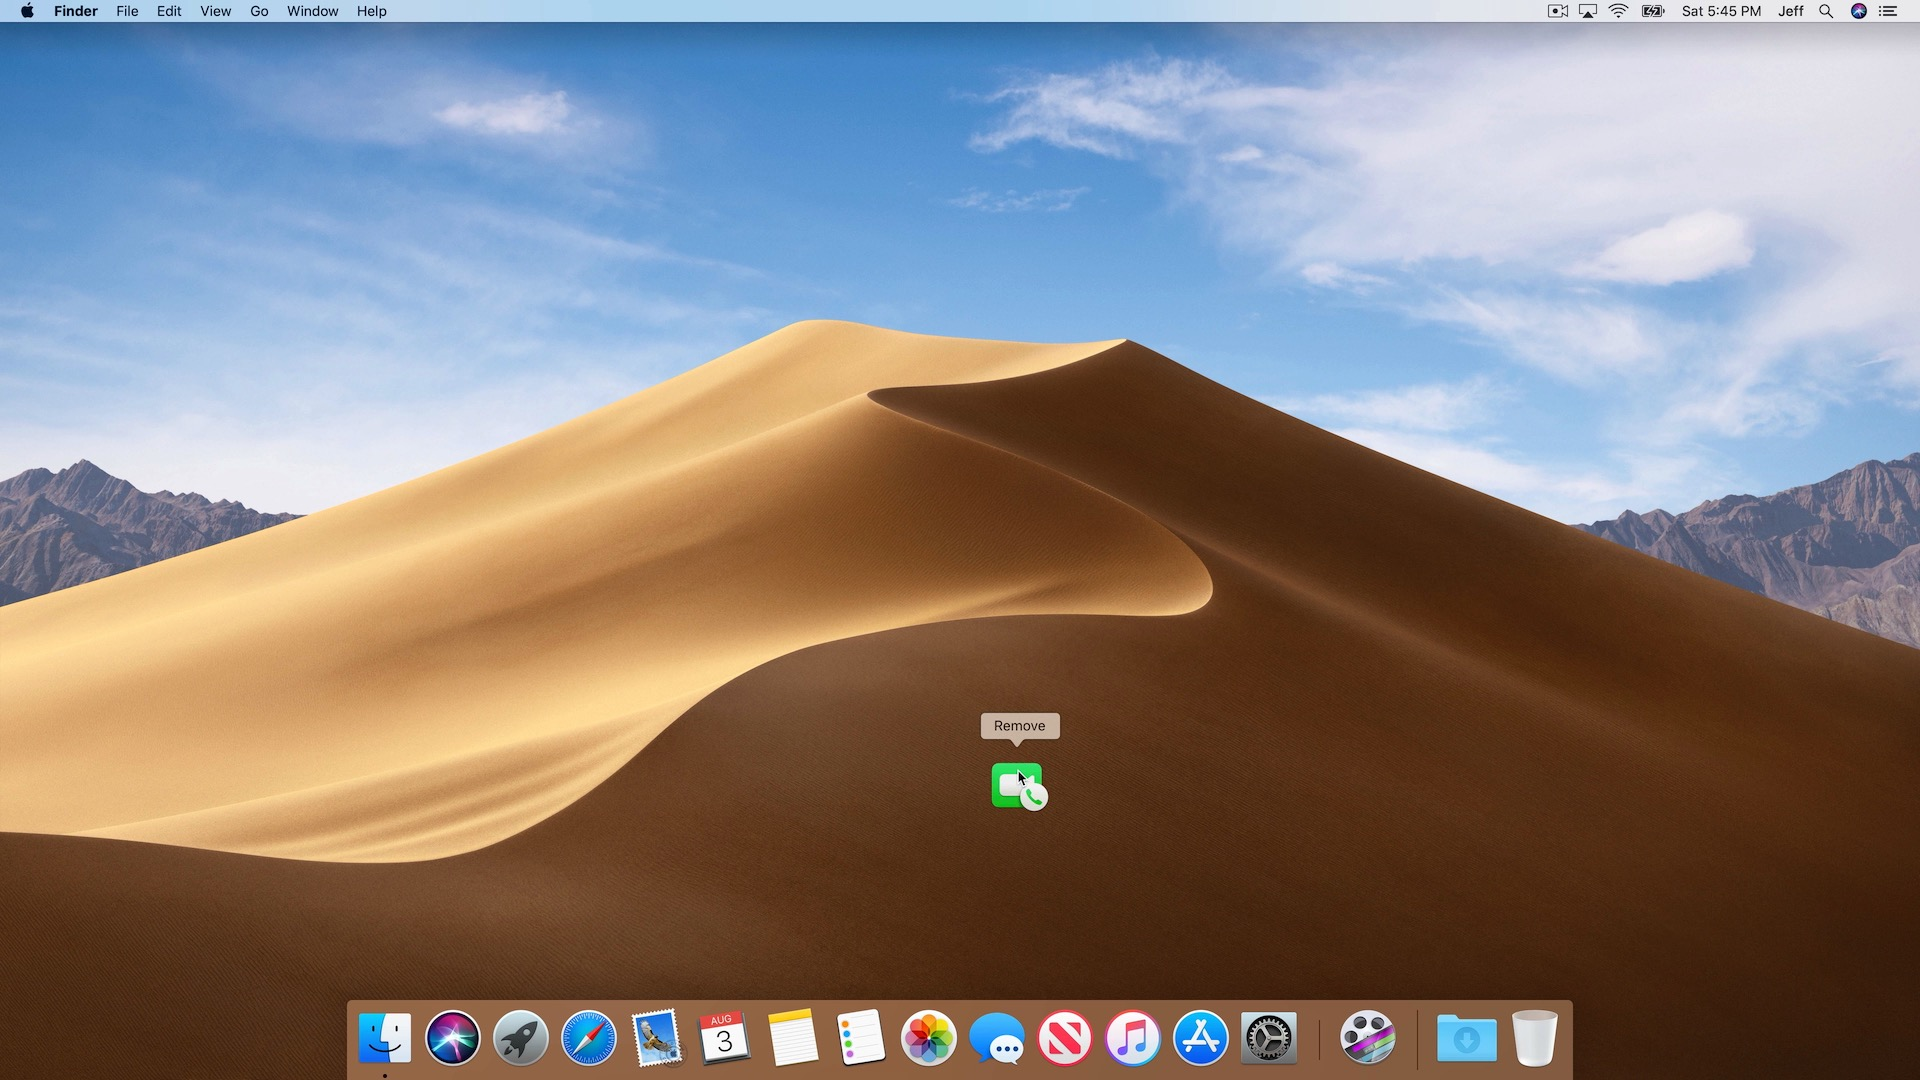 Removing apps from the Dock on Mac